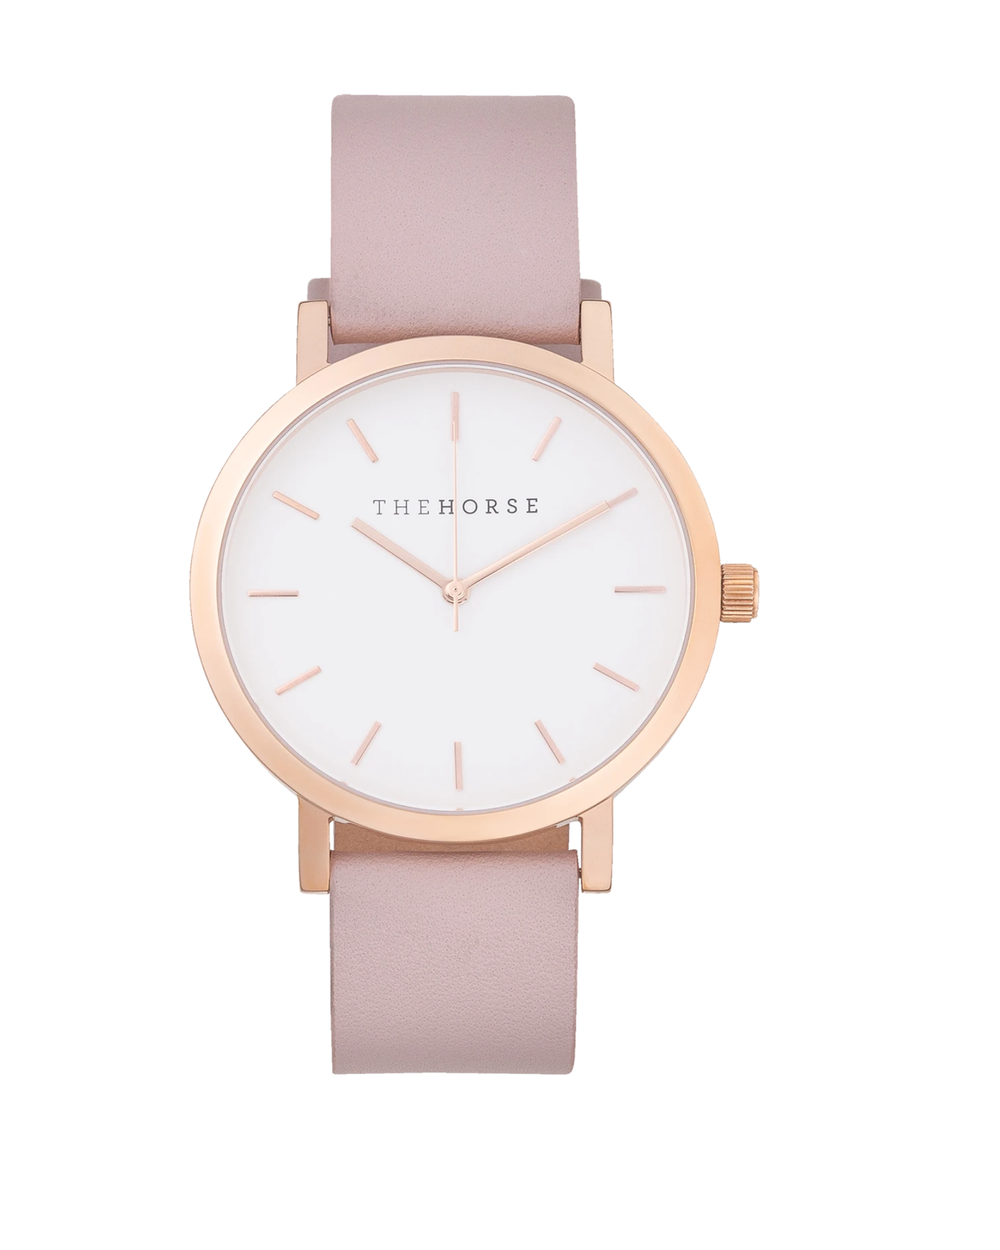 The Horse The Original- Polished Rose Gold / White Dial / Blush Leather